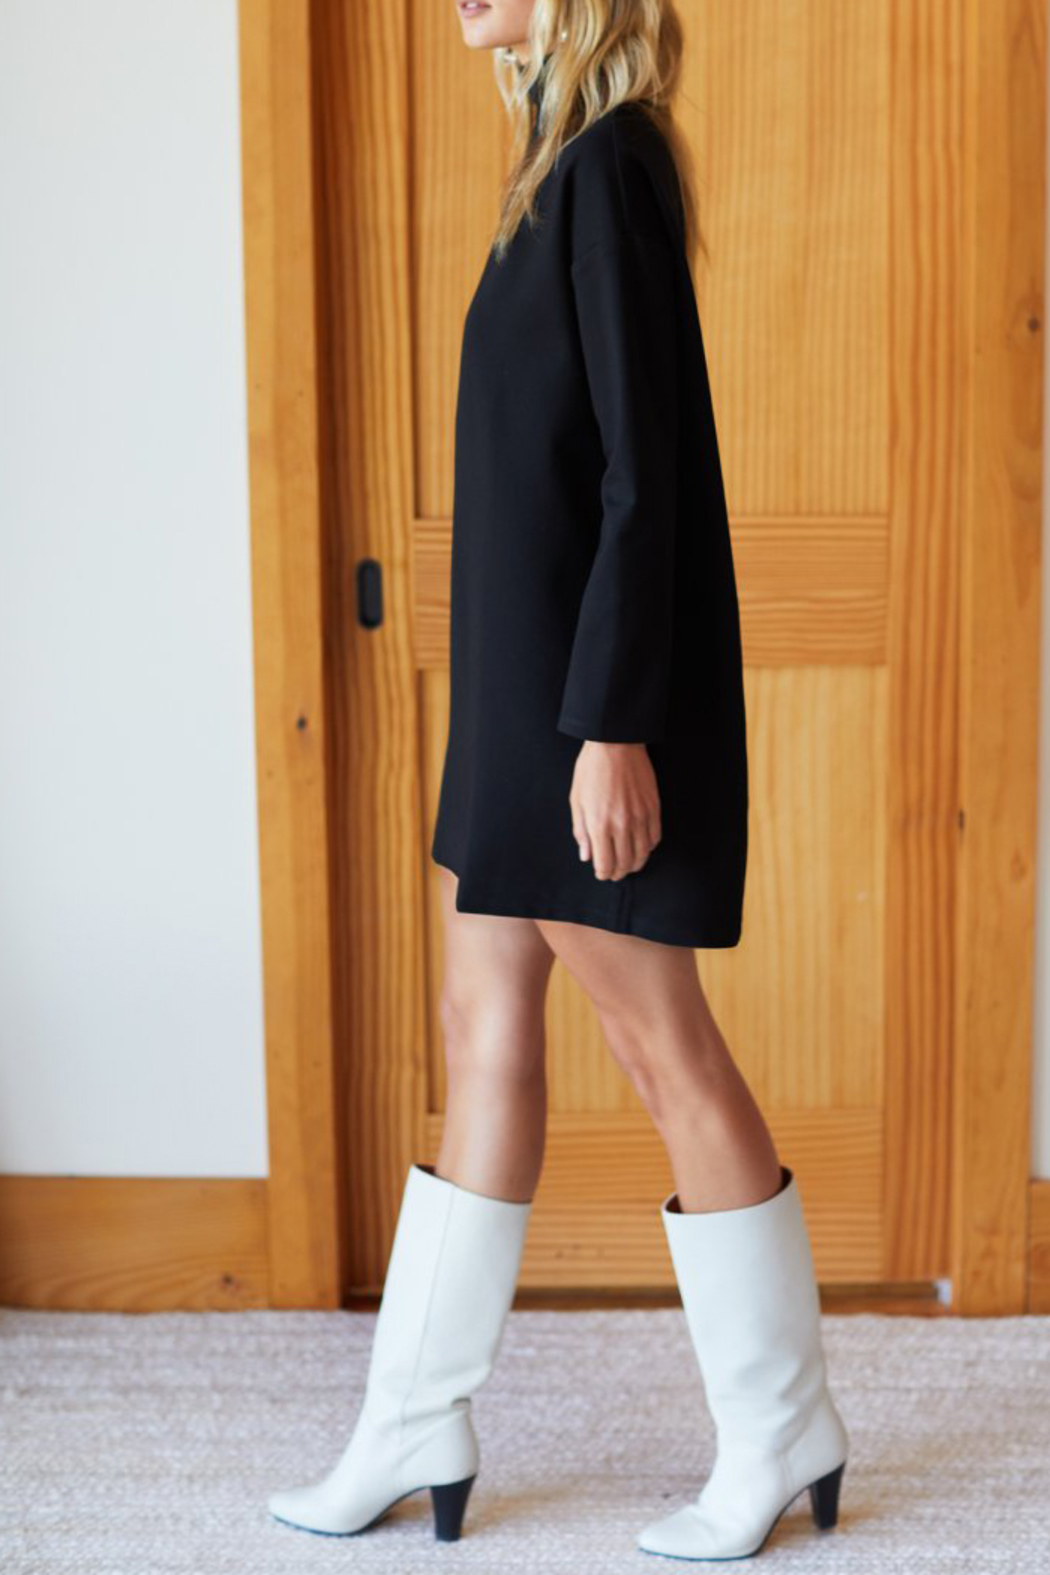 Emerson Fry Edie Ponte Turtleneck Dress - Front Full Image